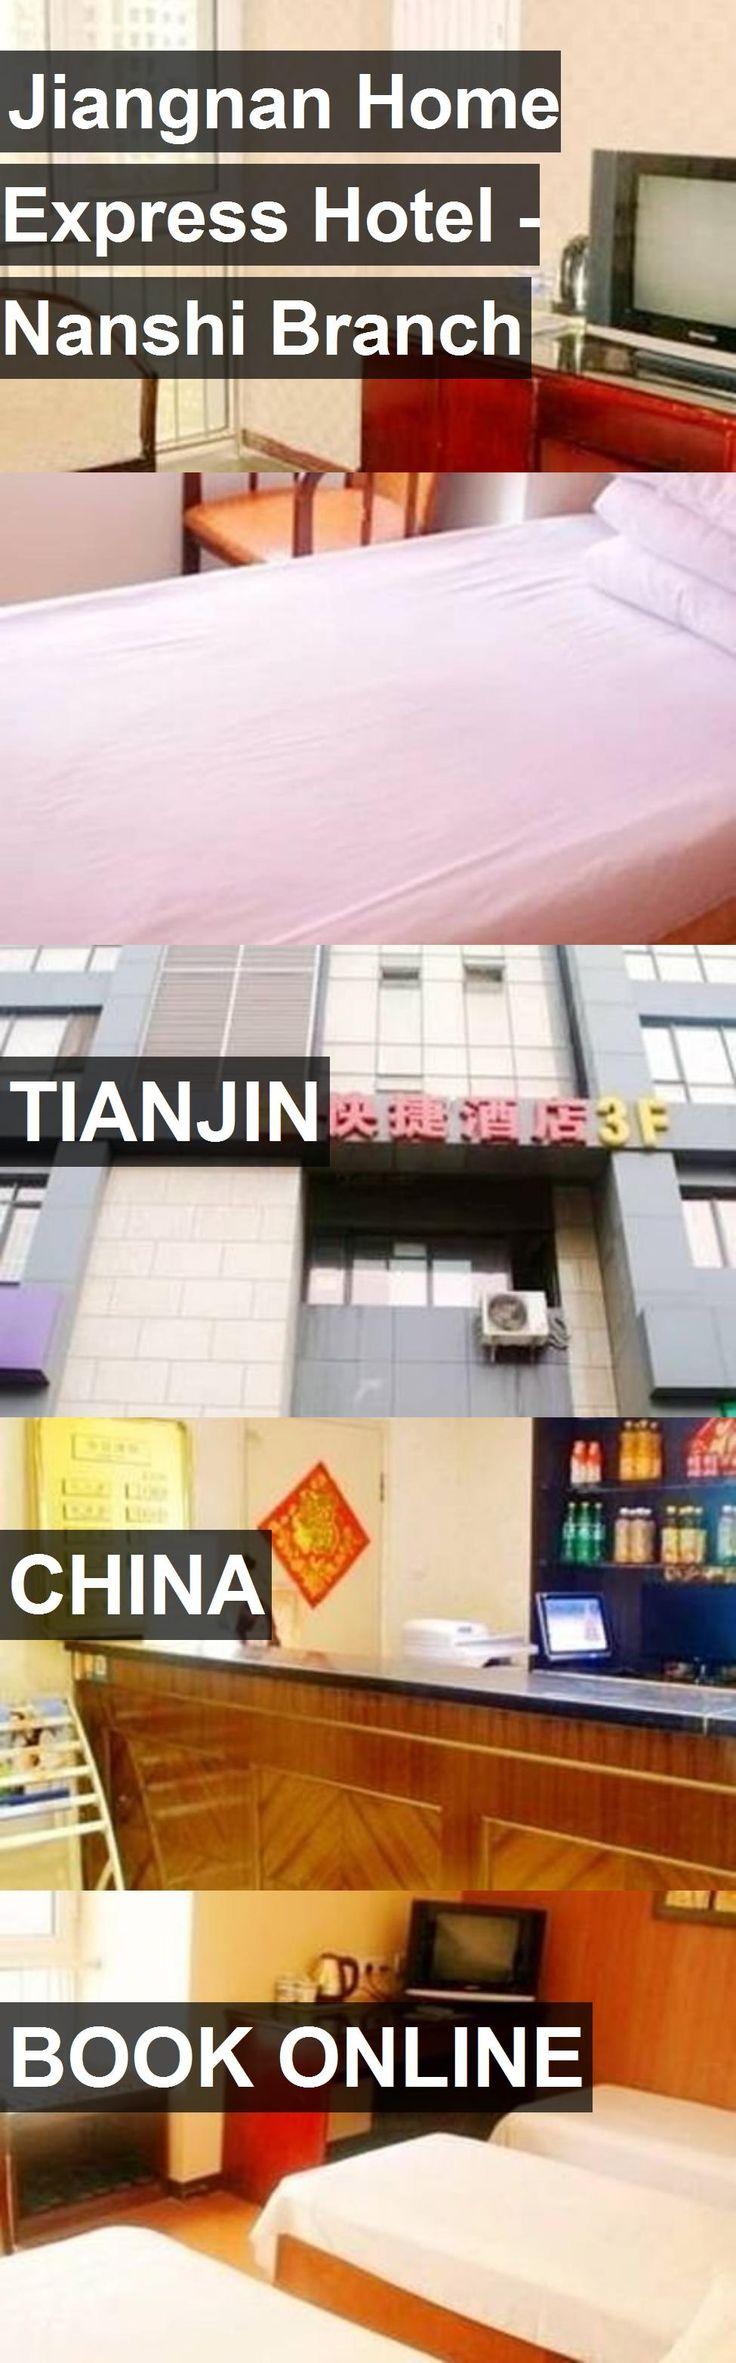 Hotel Jiangnan Home Express Hotel - Nanshi Branch in Tianjin, China. For more information, photos, reviews and best prices please follow the link. #China #Tianjin #JiangnanHomeExpressHotel-NanshiBranch #hotel #travel #vacation